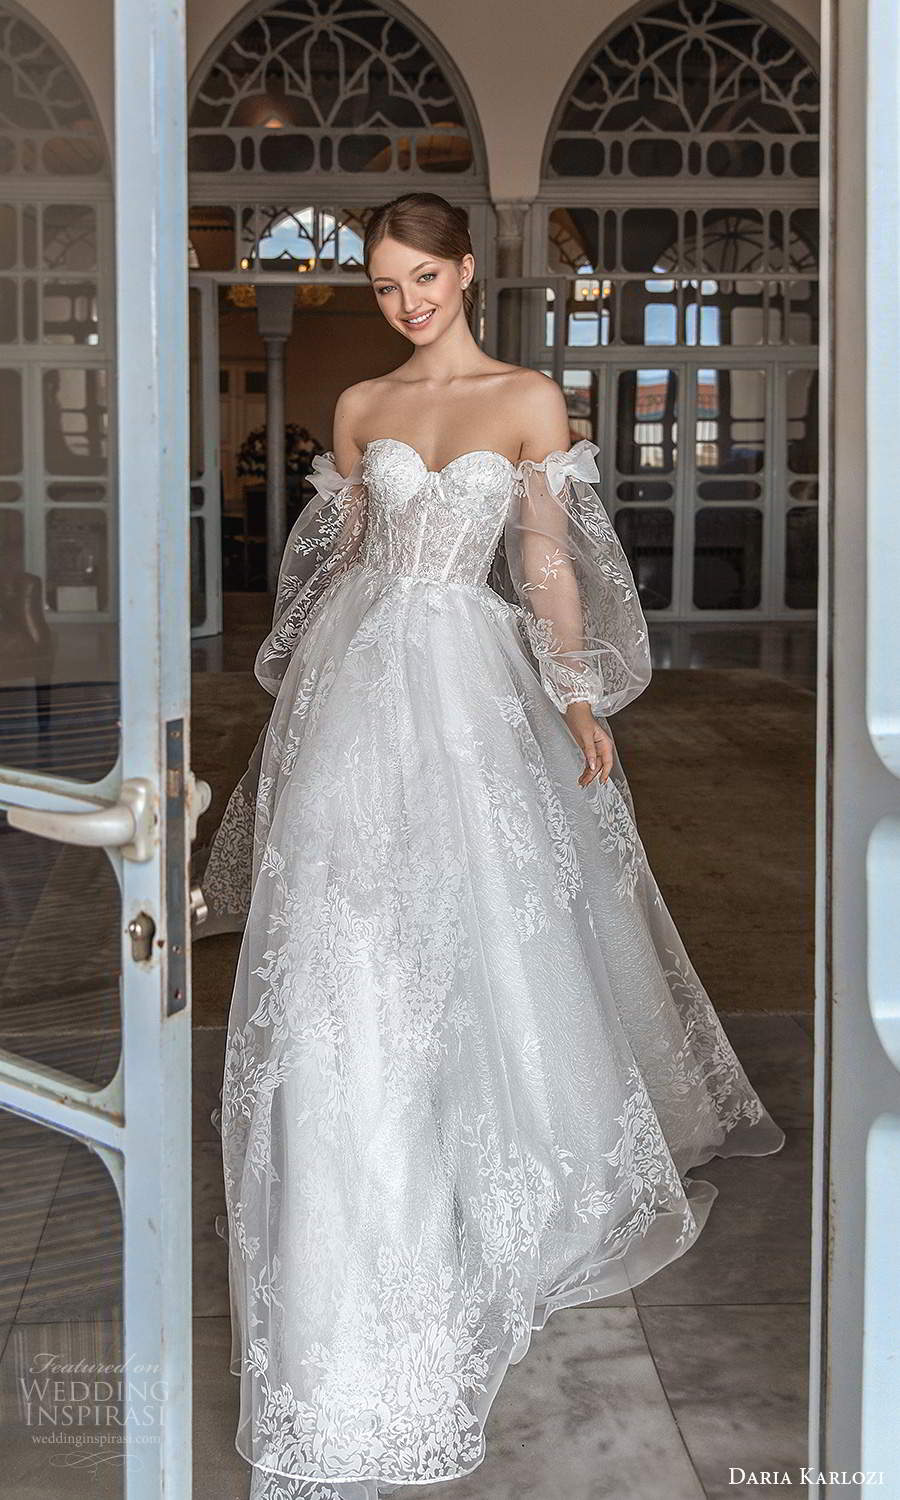 daria karlozi 2021 bridal detached sheer bishop sleeves strapless sweetheart embellished lace a line ball gown wedding dress chapel train (5) mv